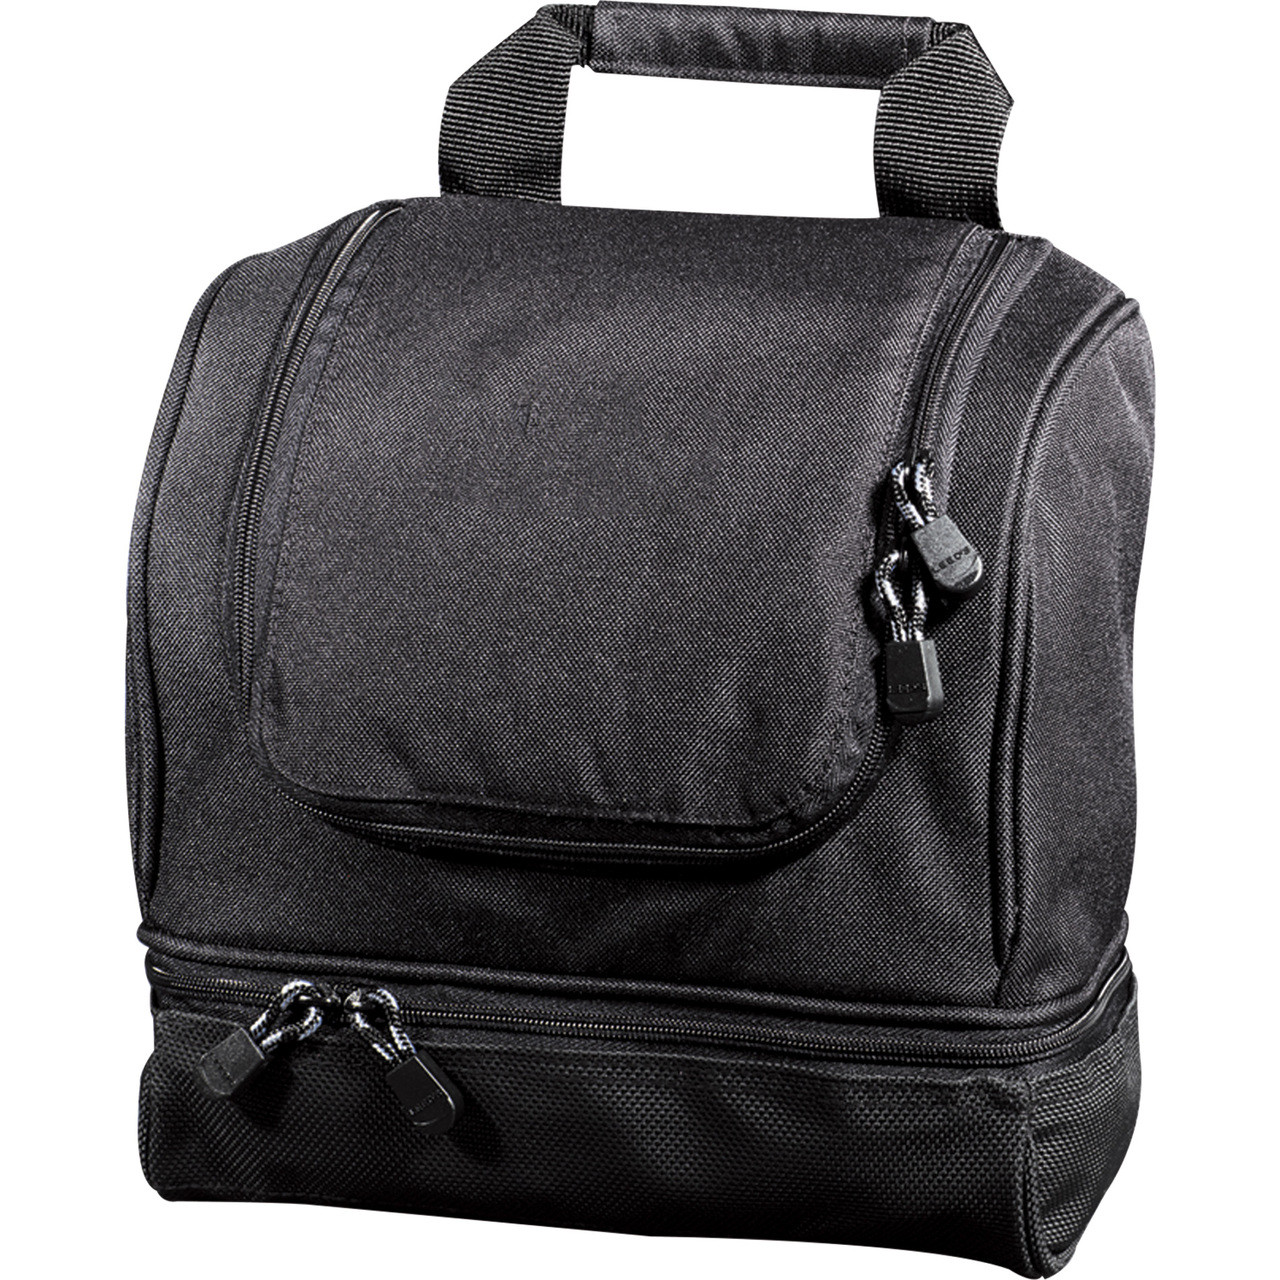 Personalized travel utility kit with zippered wet pocket, interior mesh pocket, and debossed with recipients initials